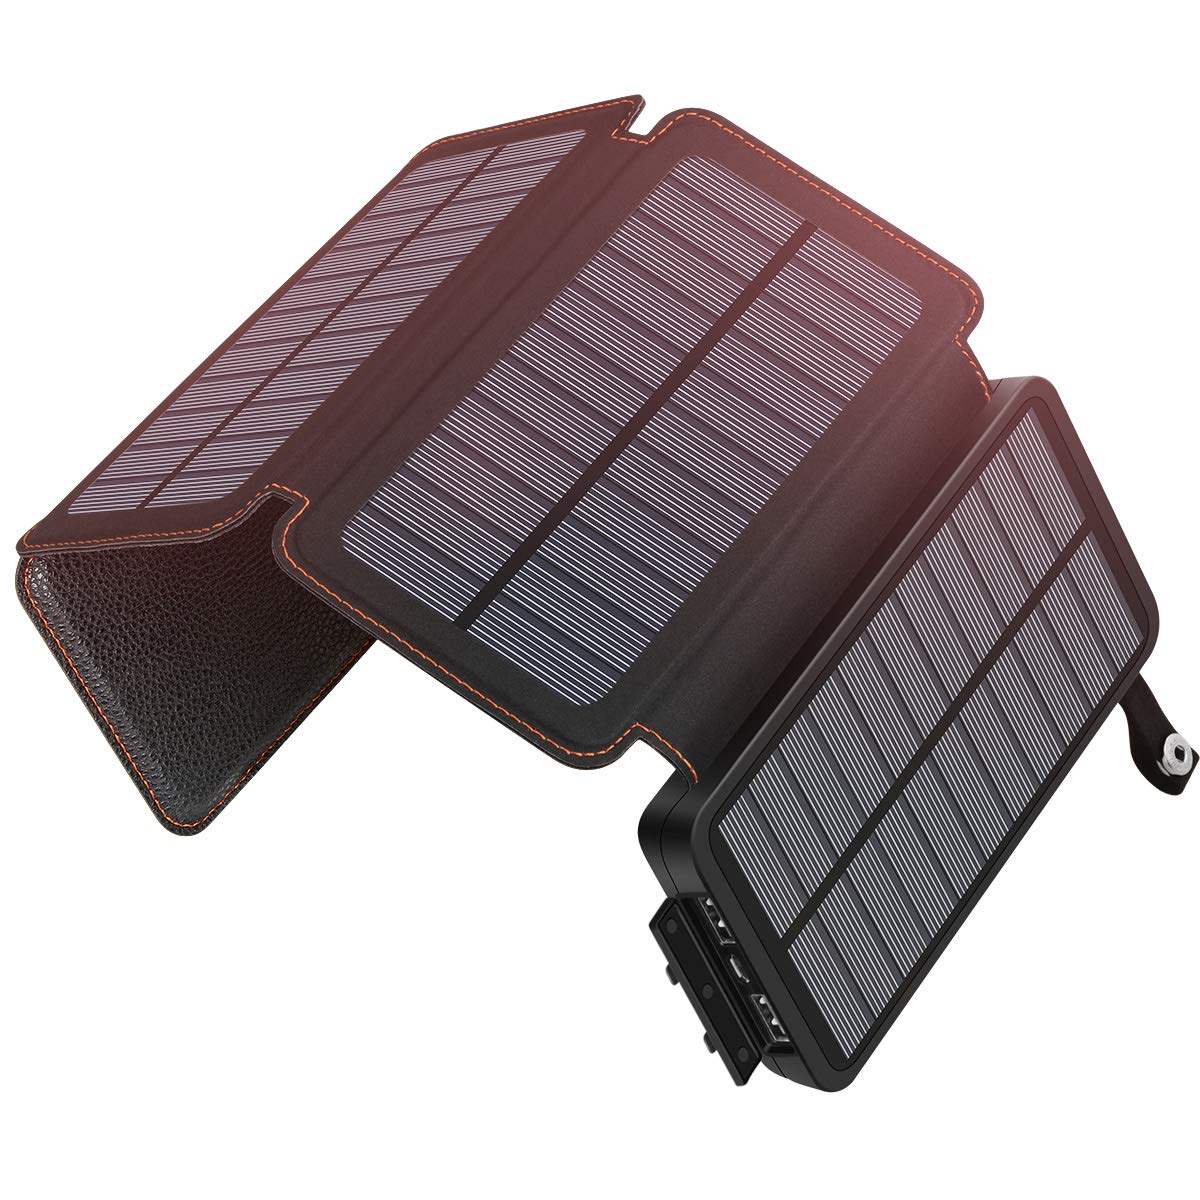 SOARAISE Solar Charger 25000mAh Portable Power Bank with 2 USB Output Waterproof Battery Pack Compatible with Most Phones, Tablets and More by SOARAISE